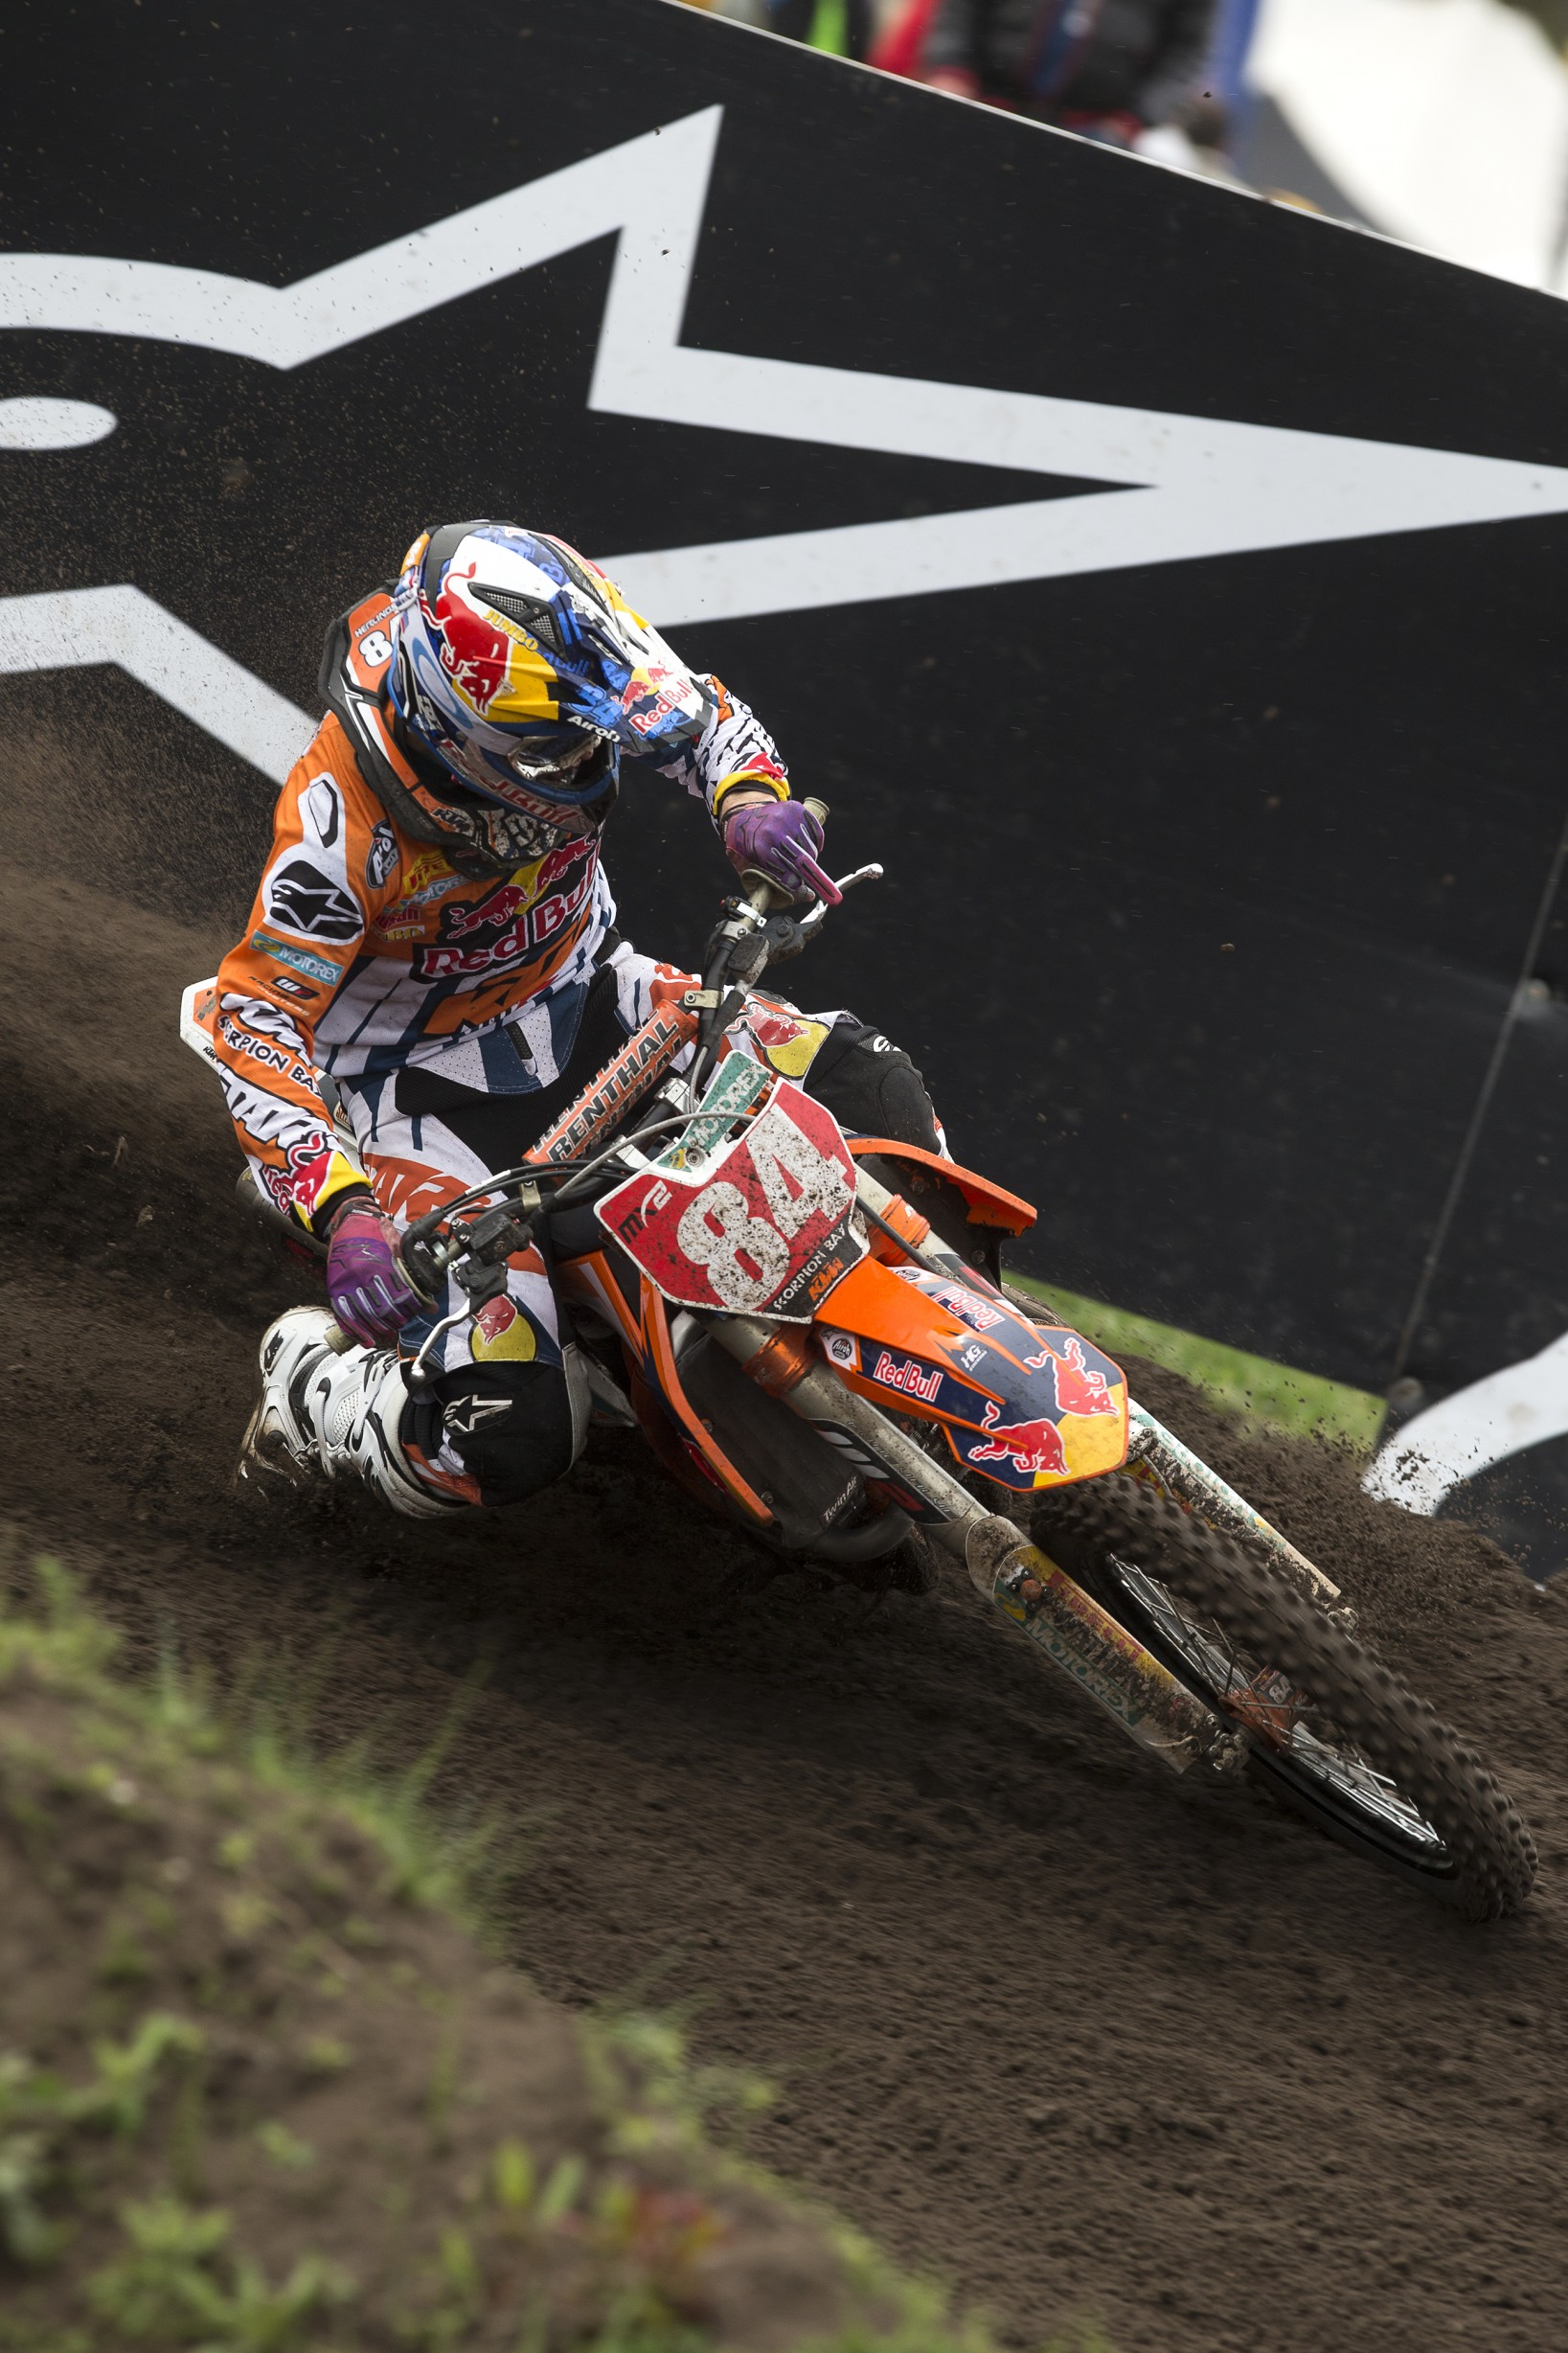 108387_Herlings_MXGP_2015_R05_RX_0957_2456